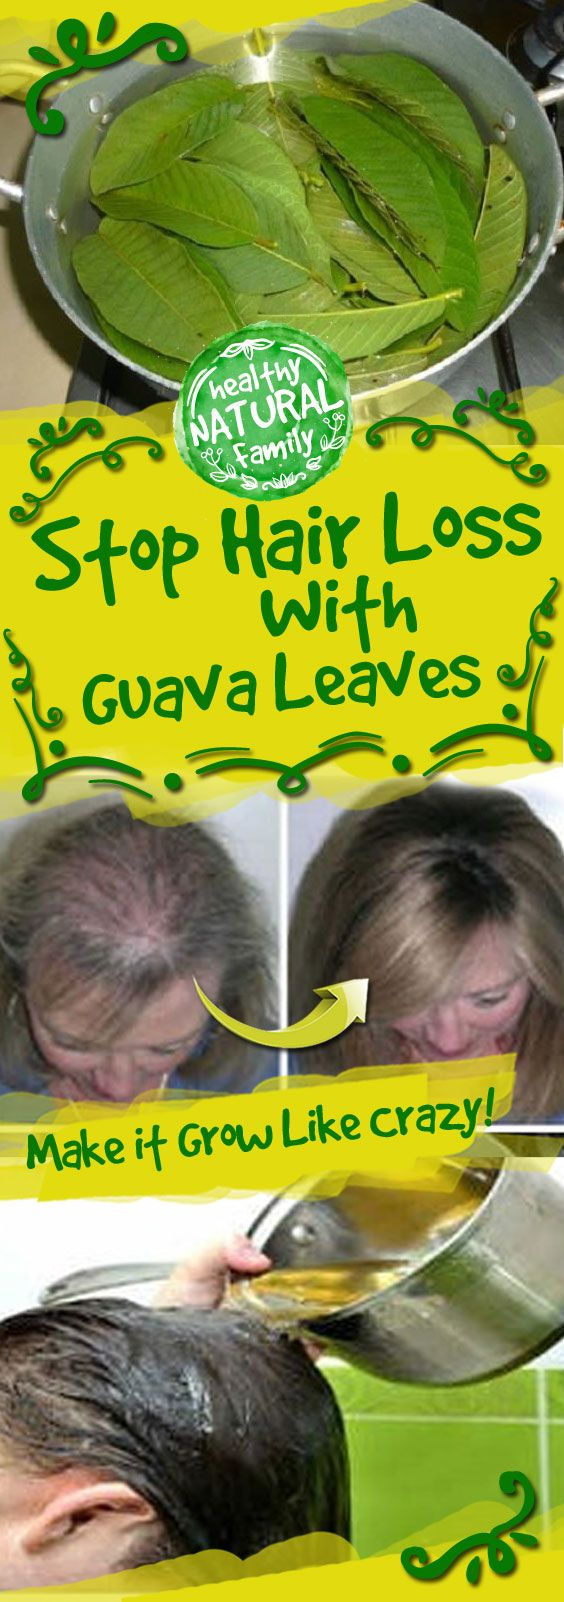 Guava leaves are worthy of so much attention since they offer an abundance of health benefits. They are high in vitamins A and C, potassium, healthy fiber and lycopene. In this article we give you …